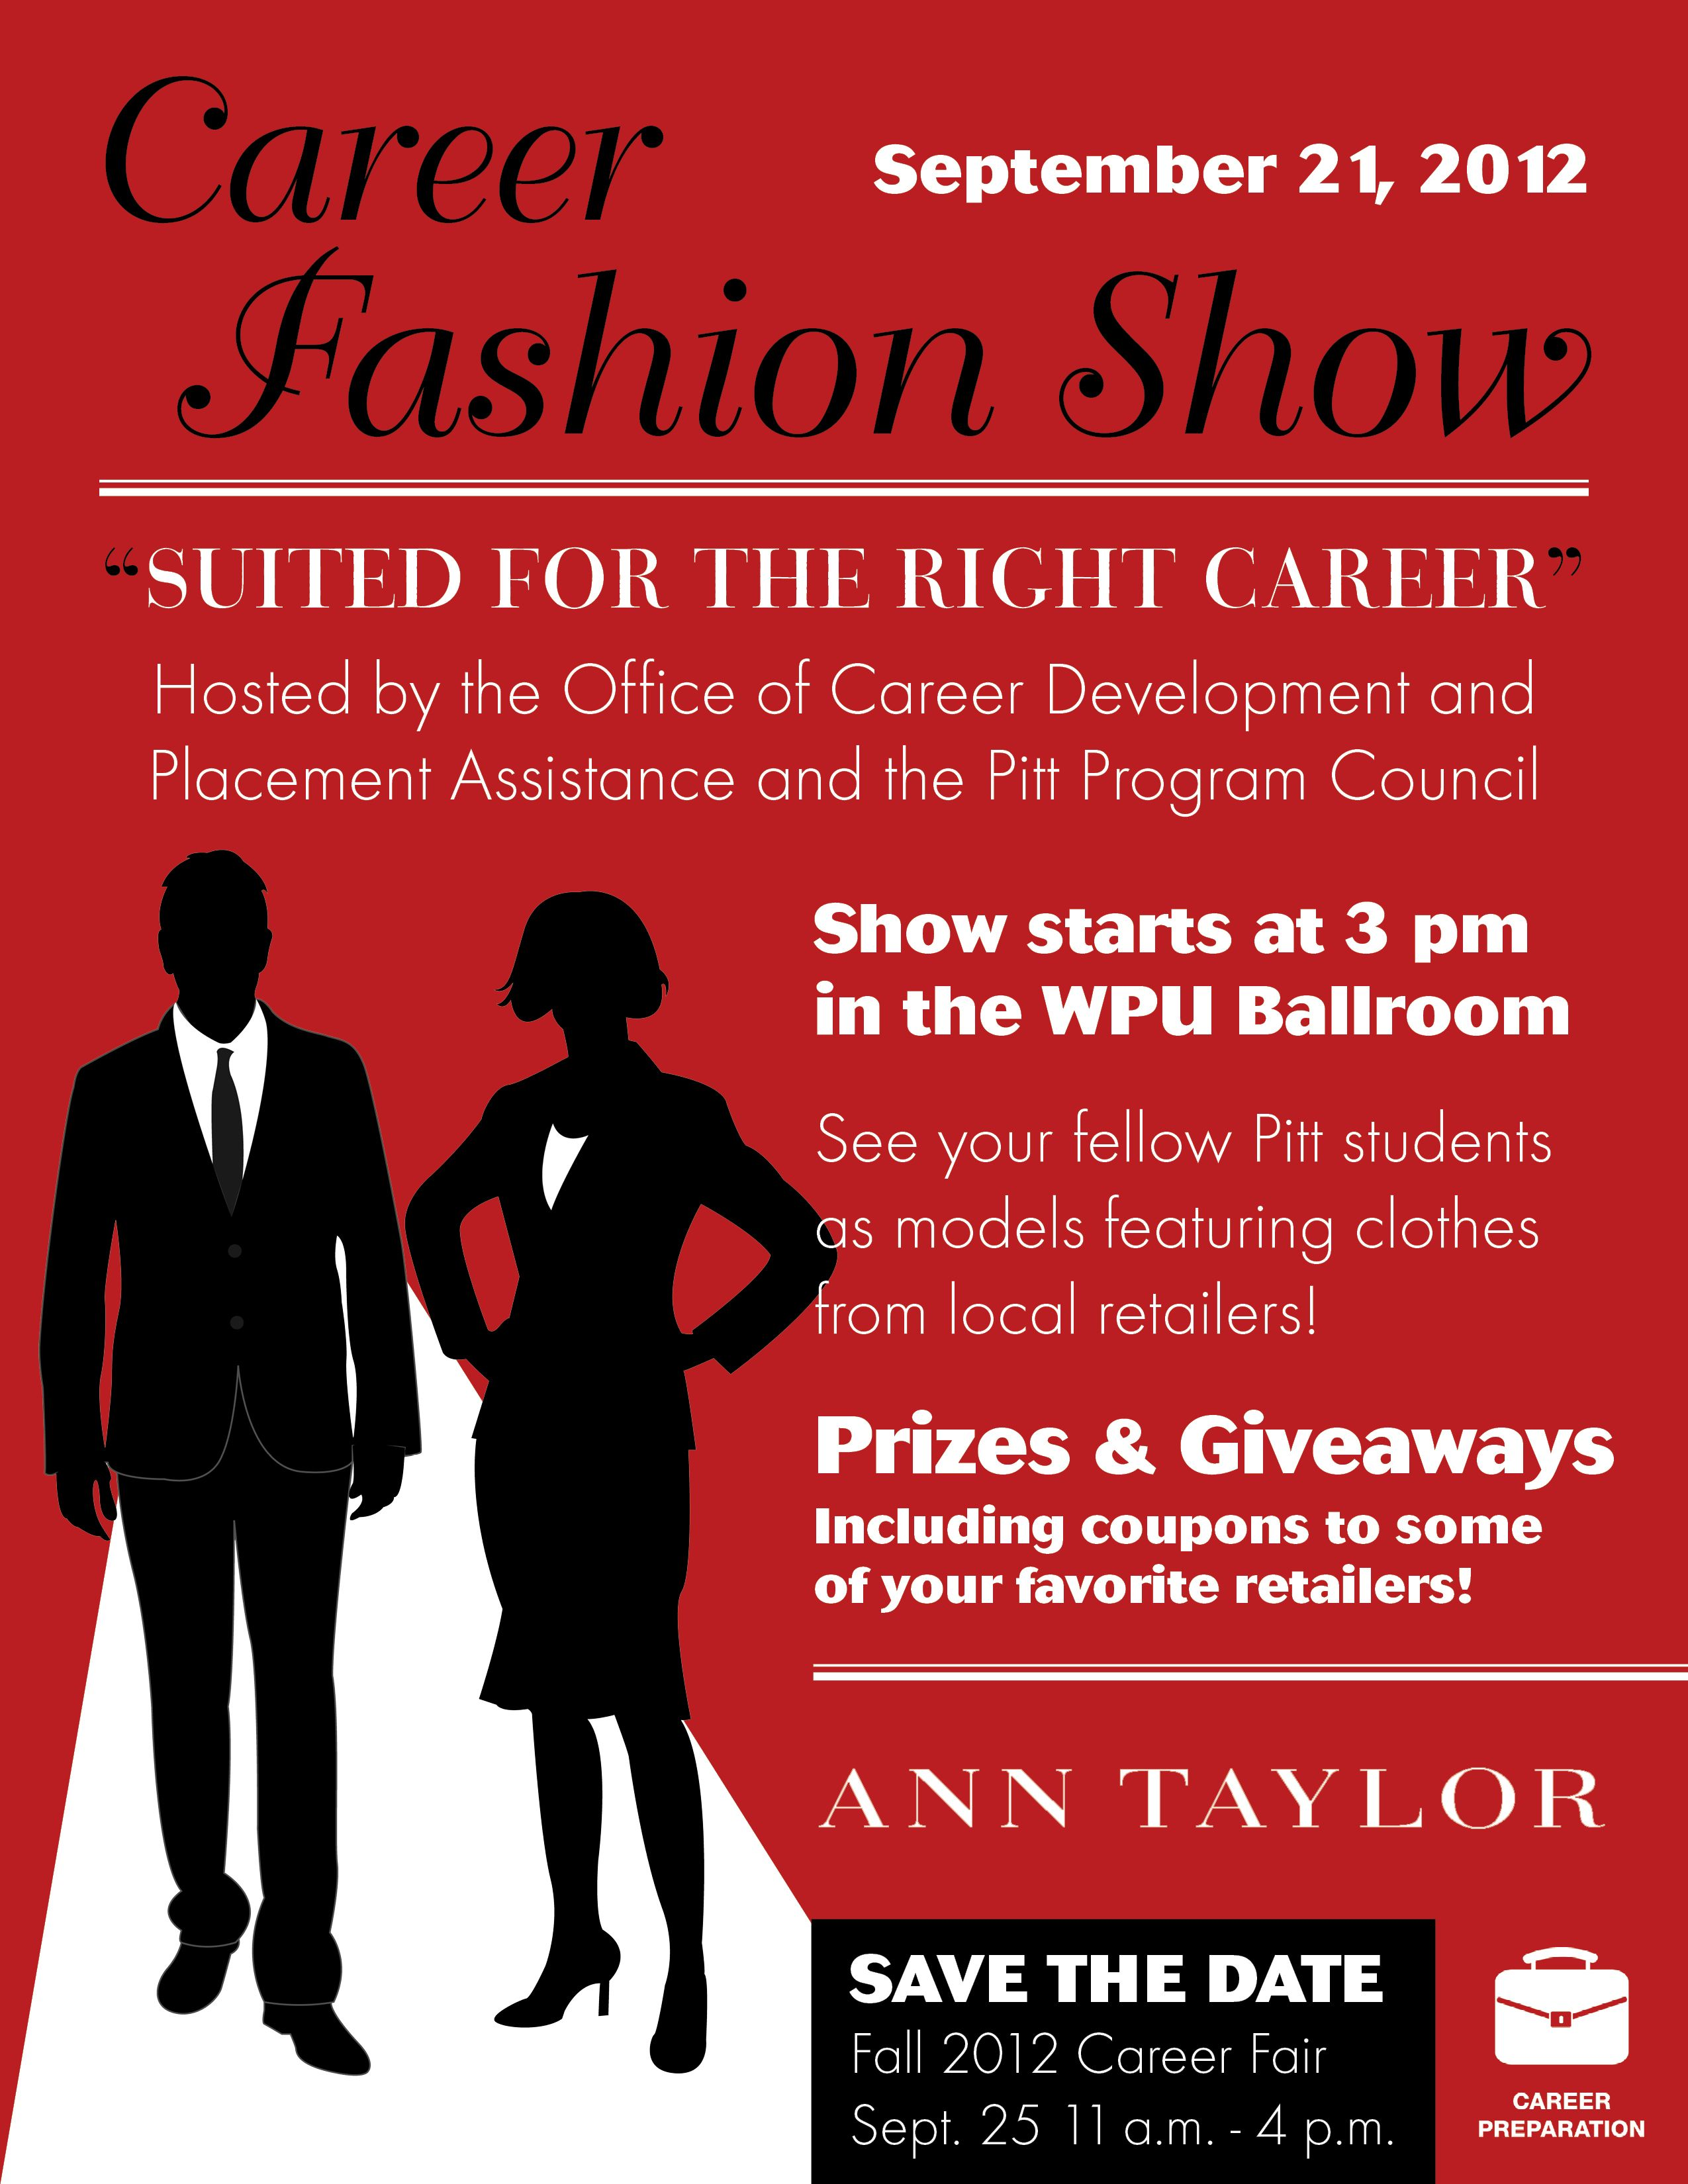 Join Us For The First Annual Career Fashion Show And Watch Your